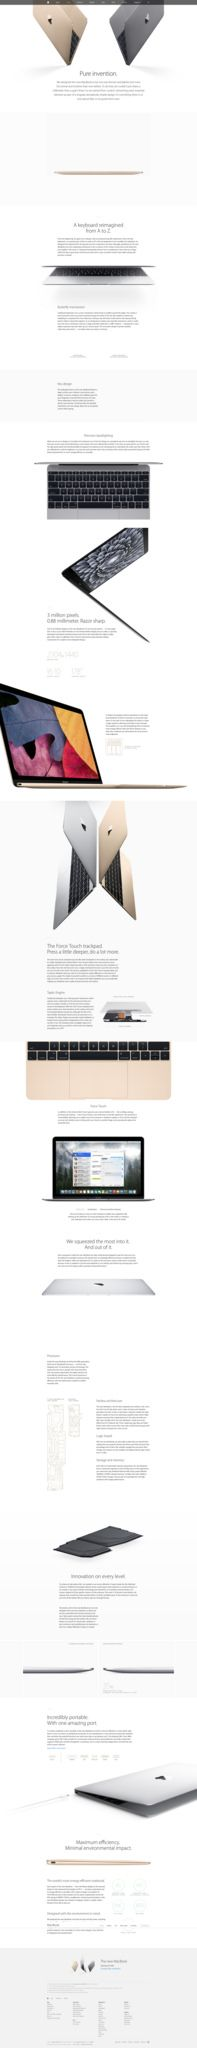 https://flic.kr/p/rvoaL1 | Apple - MacBook - Design